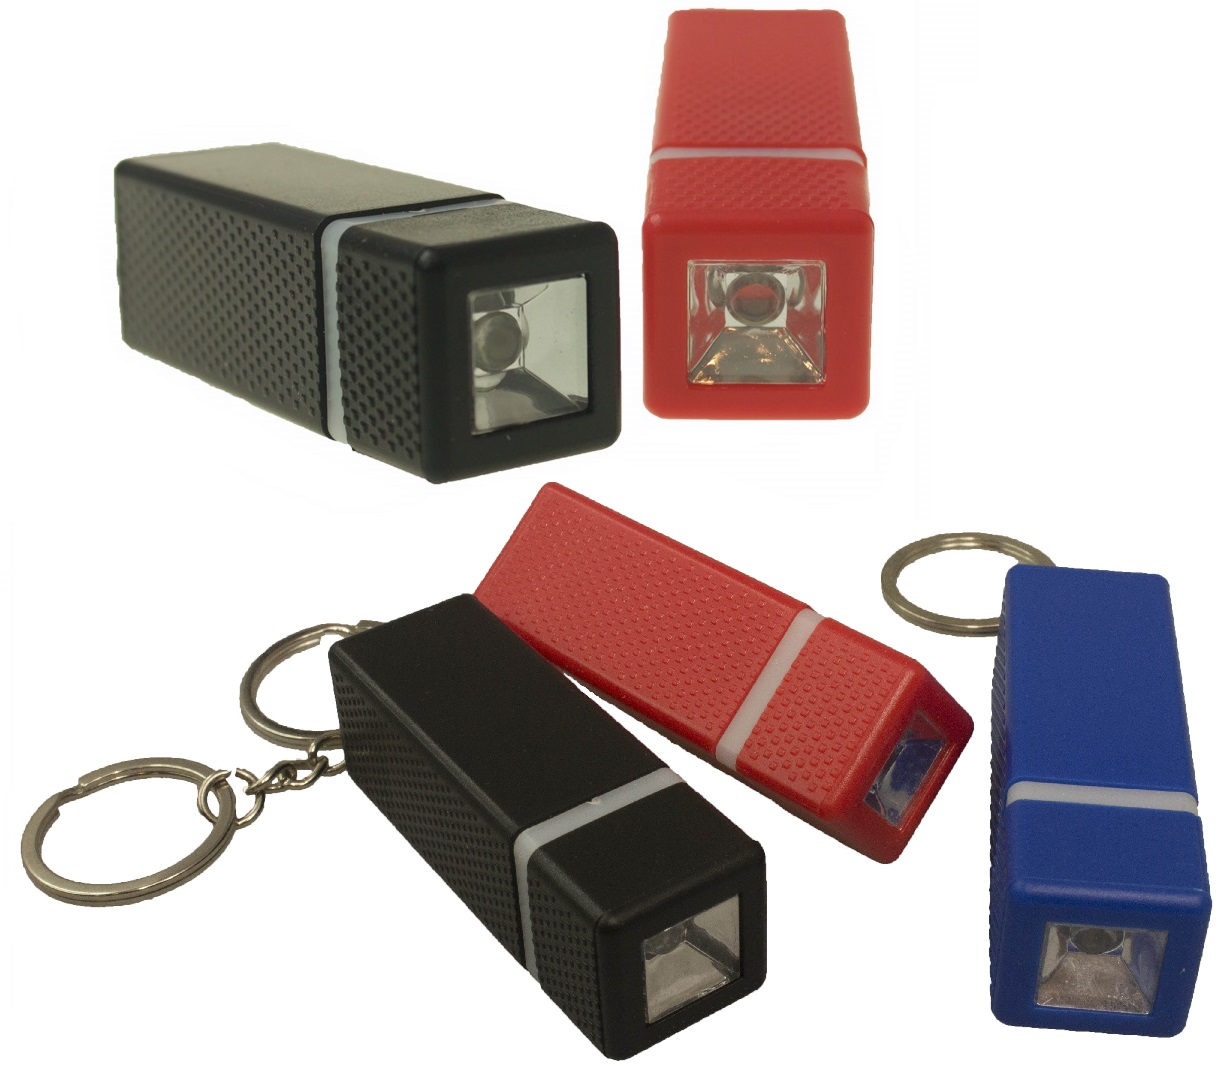 Mini Keychain LED Torchlight with button batteries